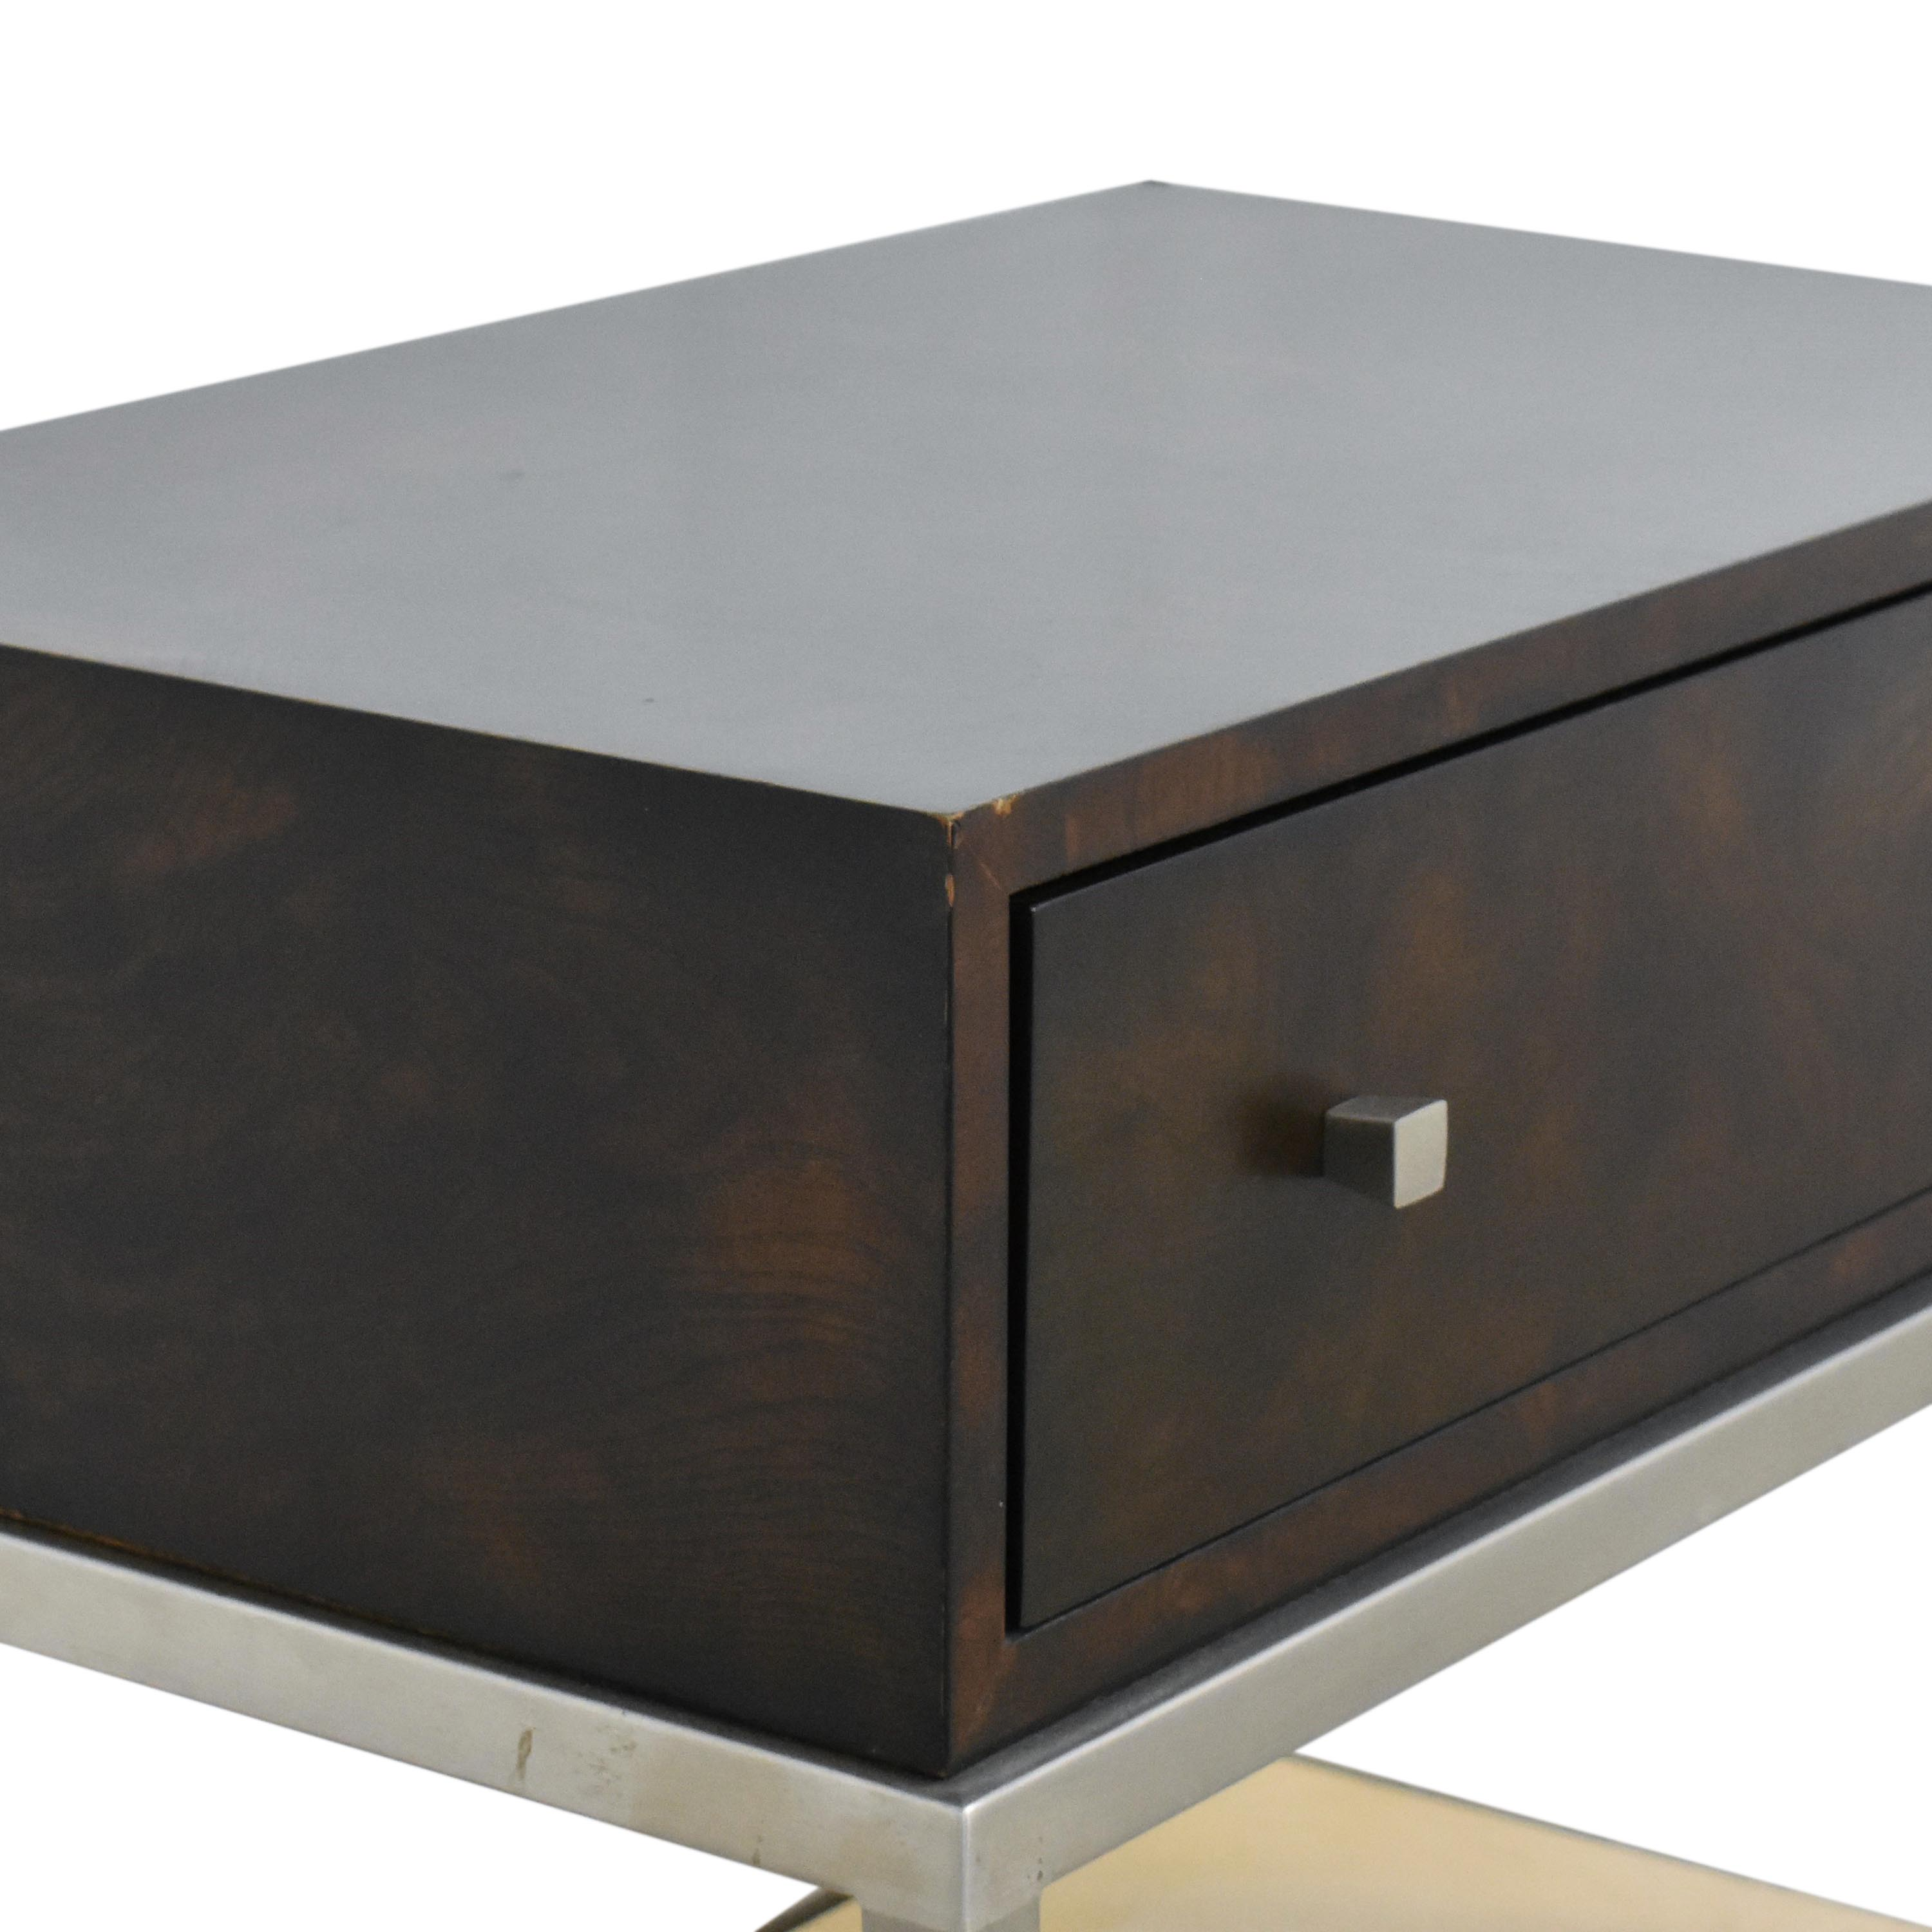 Ethan Allen Ethan Allen Side Table with Drawer on sale